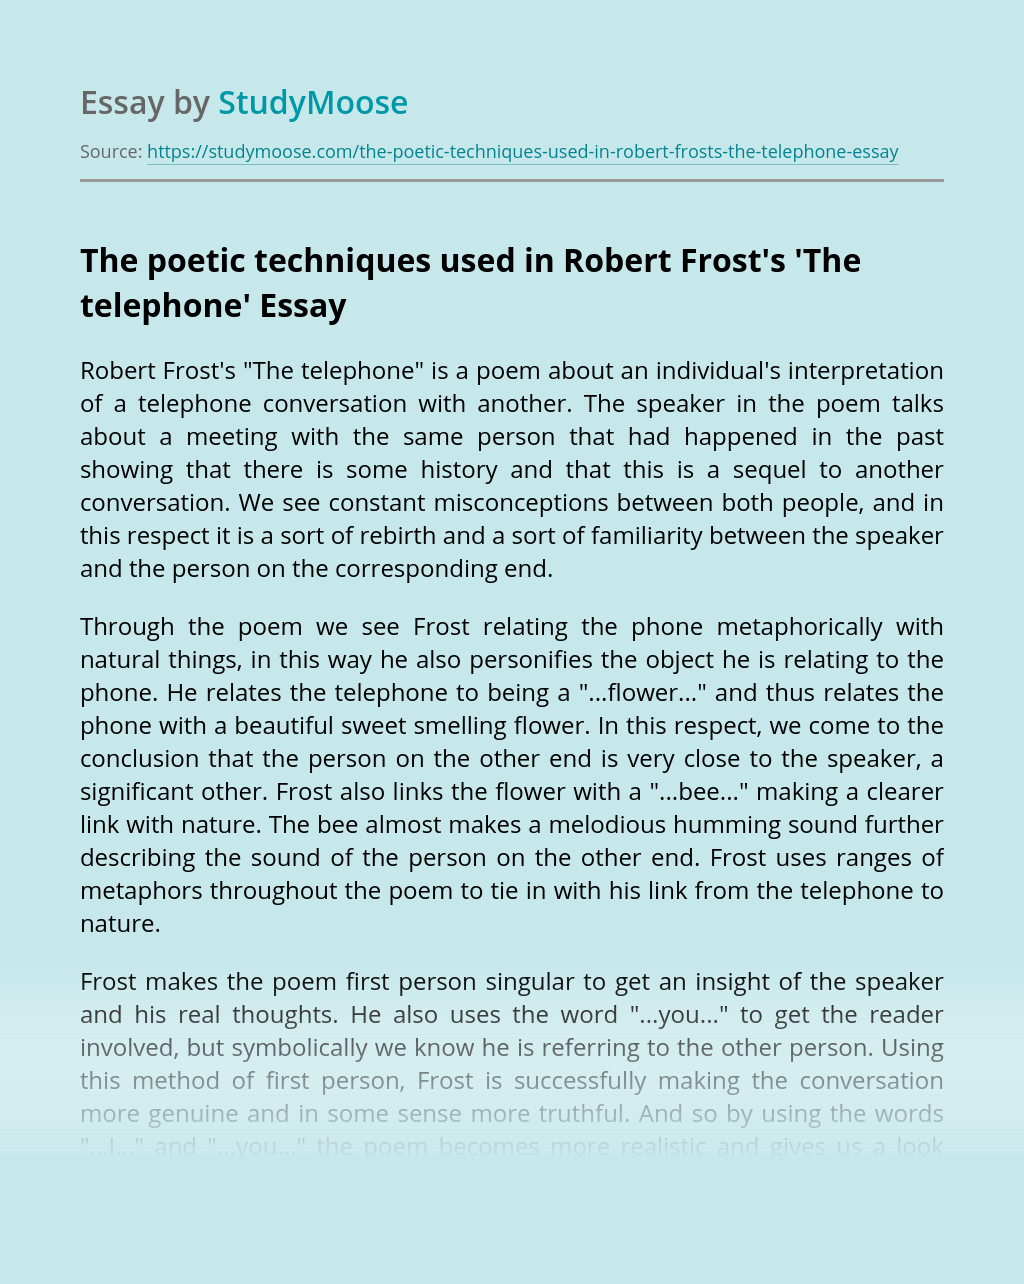 The poetic techniques used in Robert Frost's'The telephone'